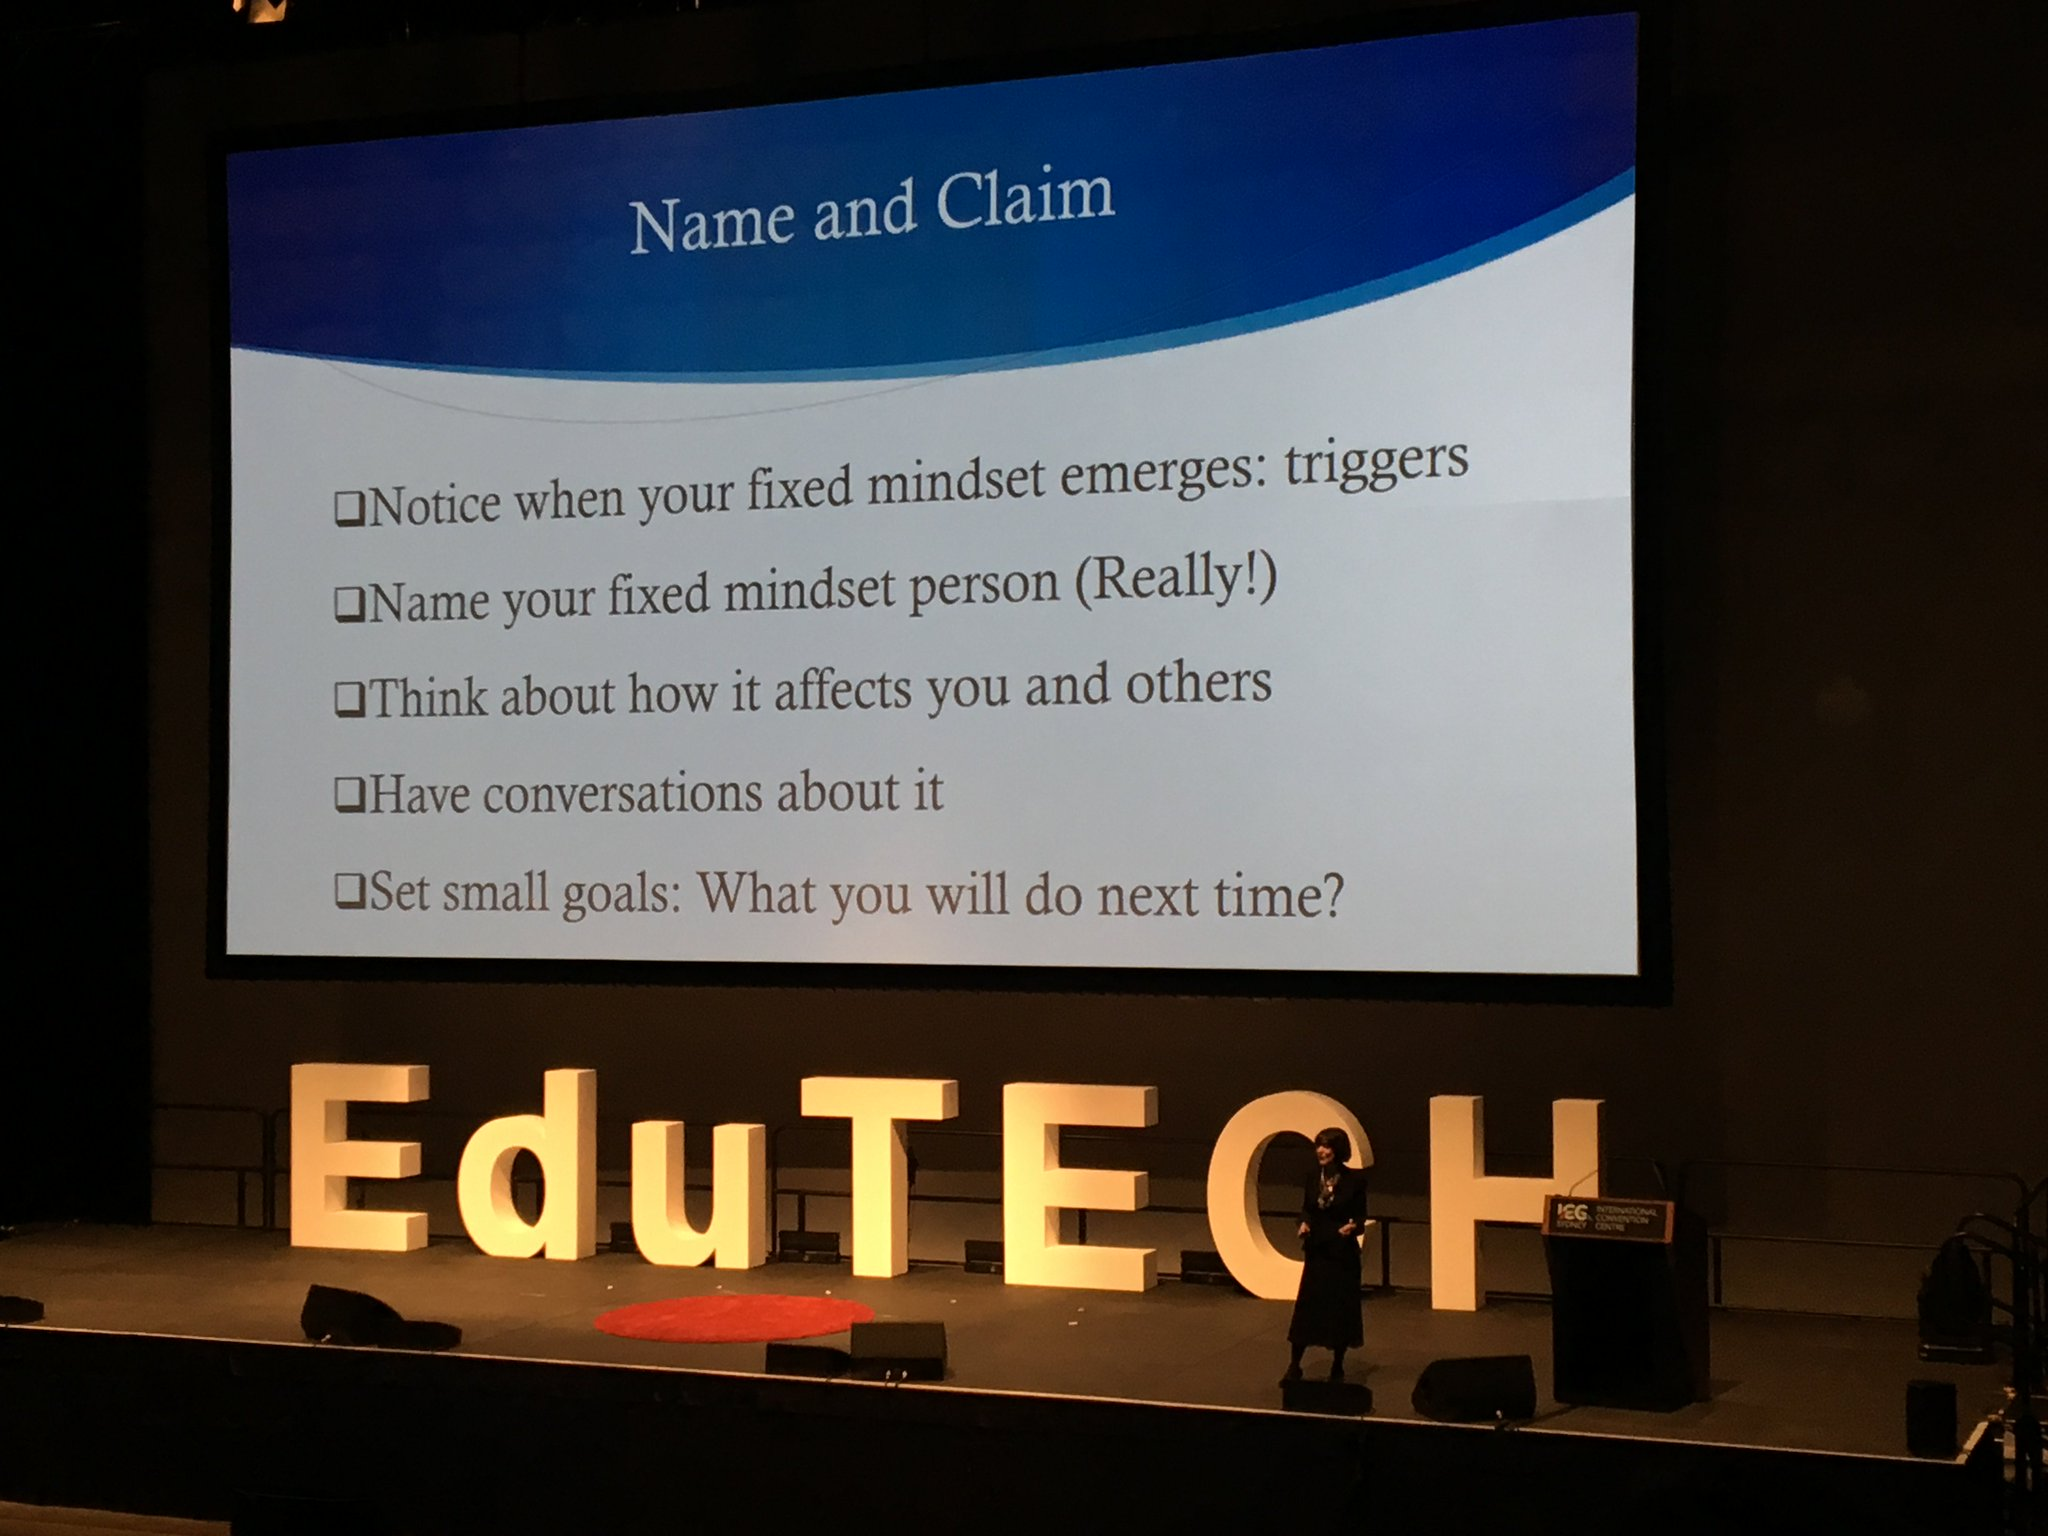 Reflecting on the idea of what triggers me into a fixed mindset #EduTech17 https://t.co/00TNZkgvi3